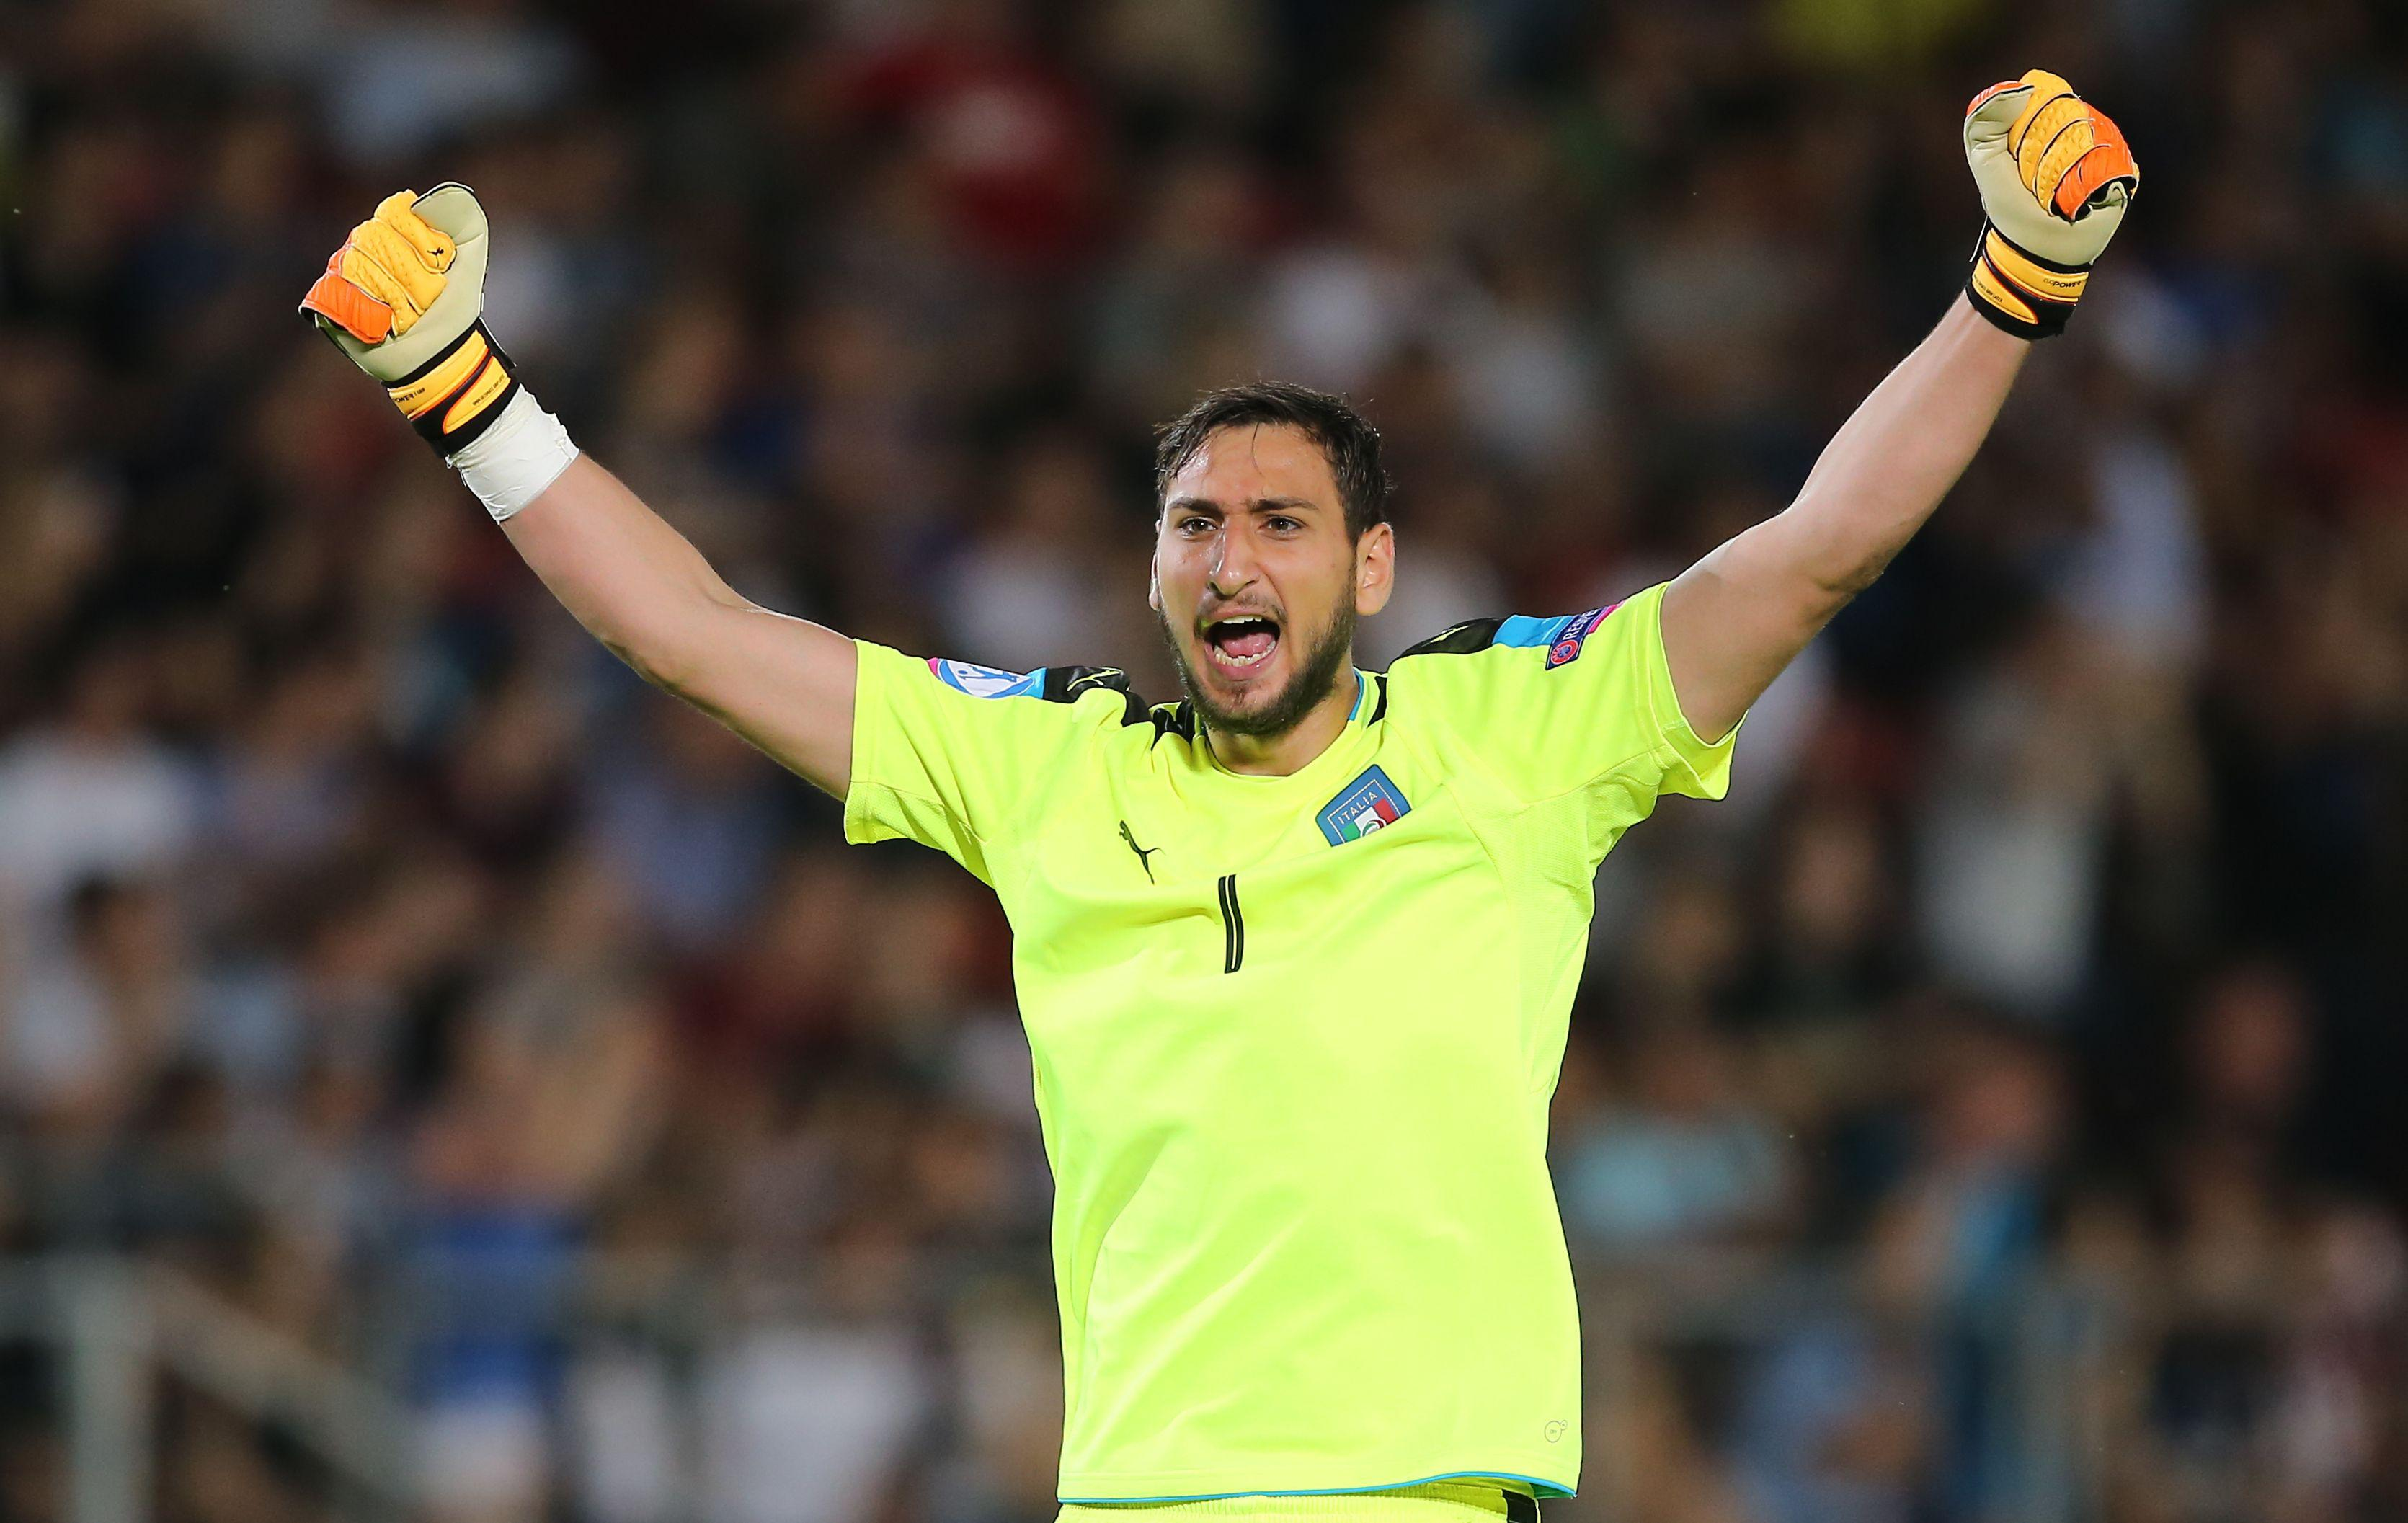 The youngster could become a fixture between the sticks for Italy for as long as Buffon